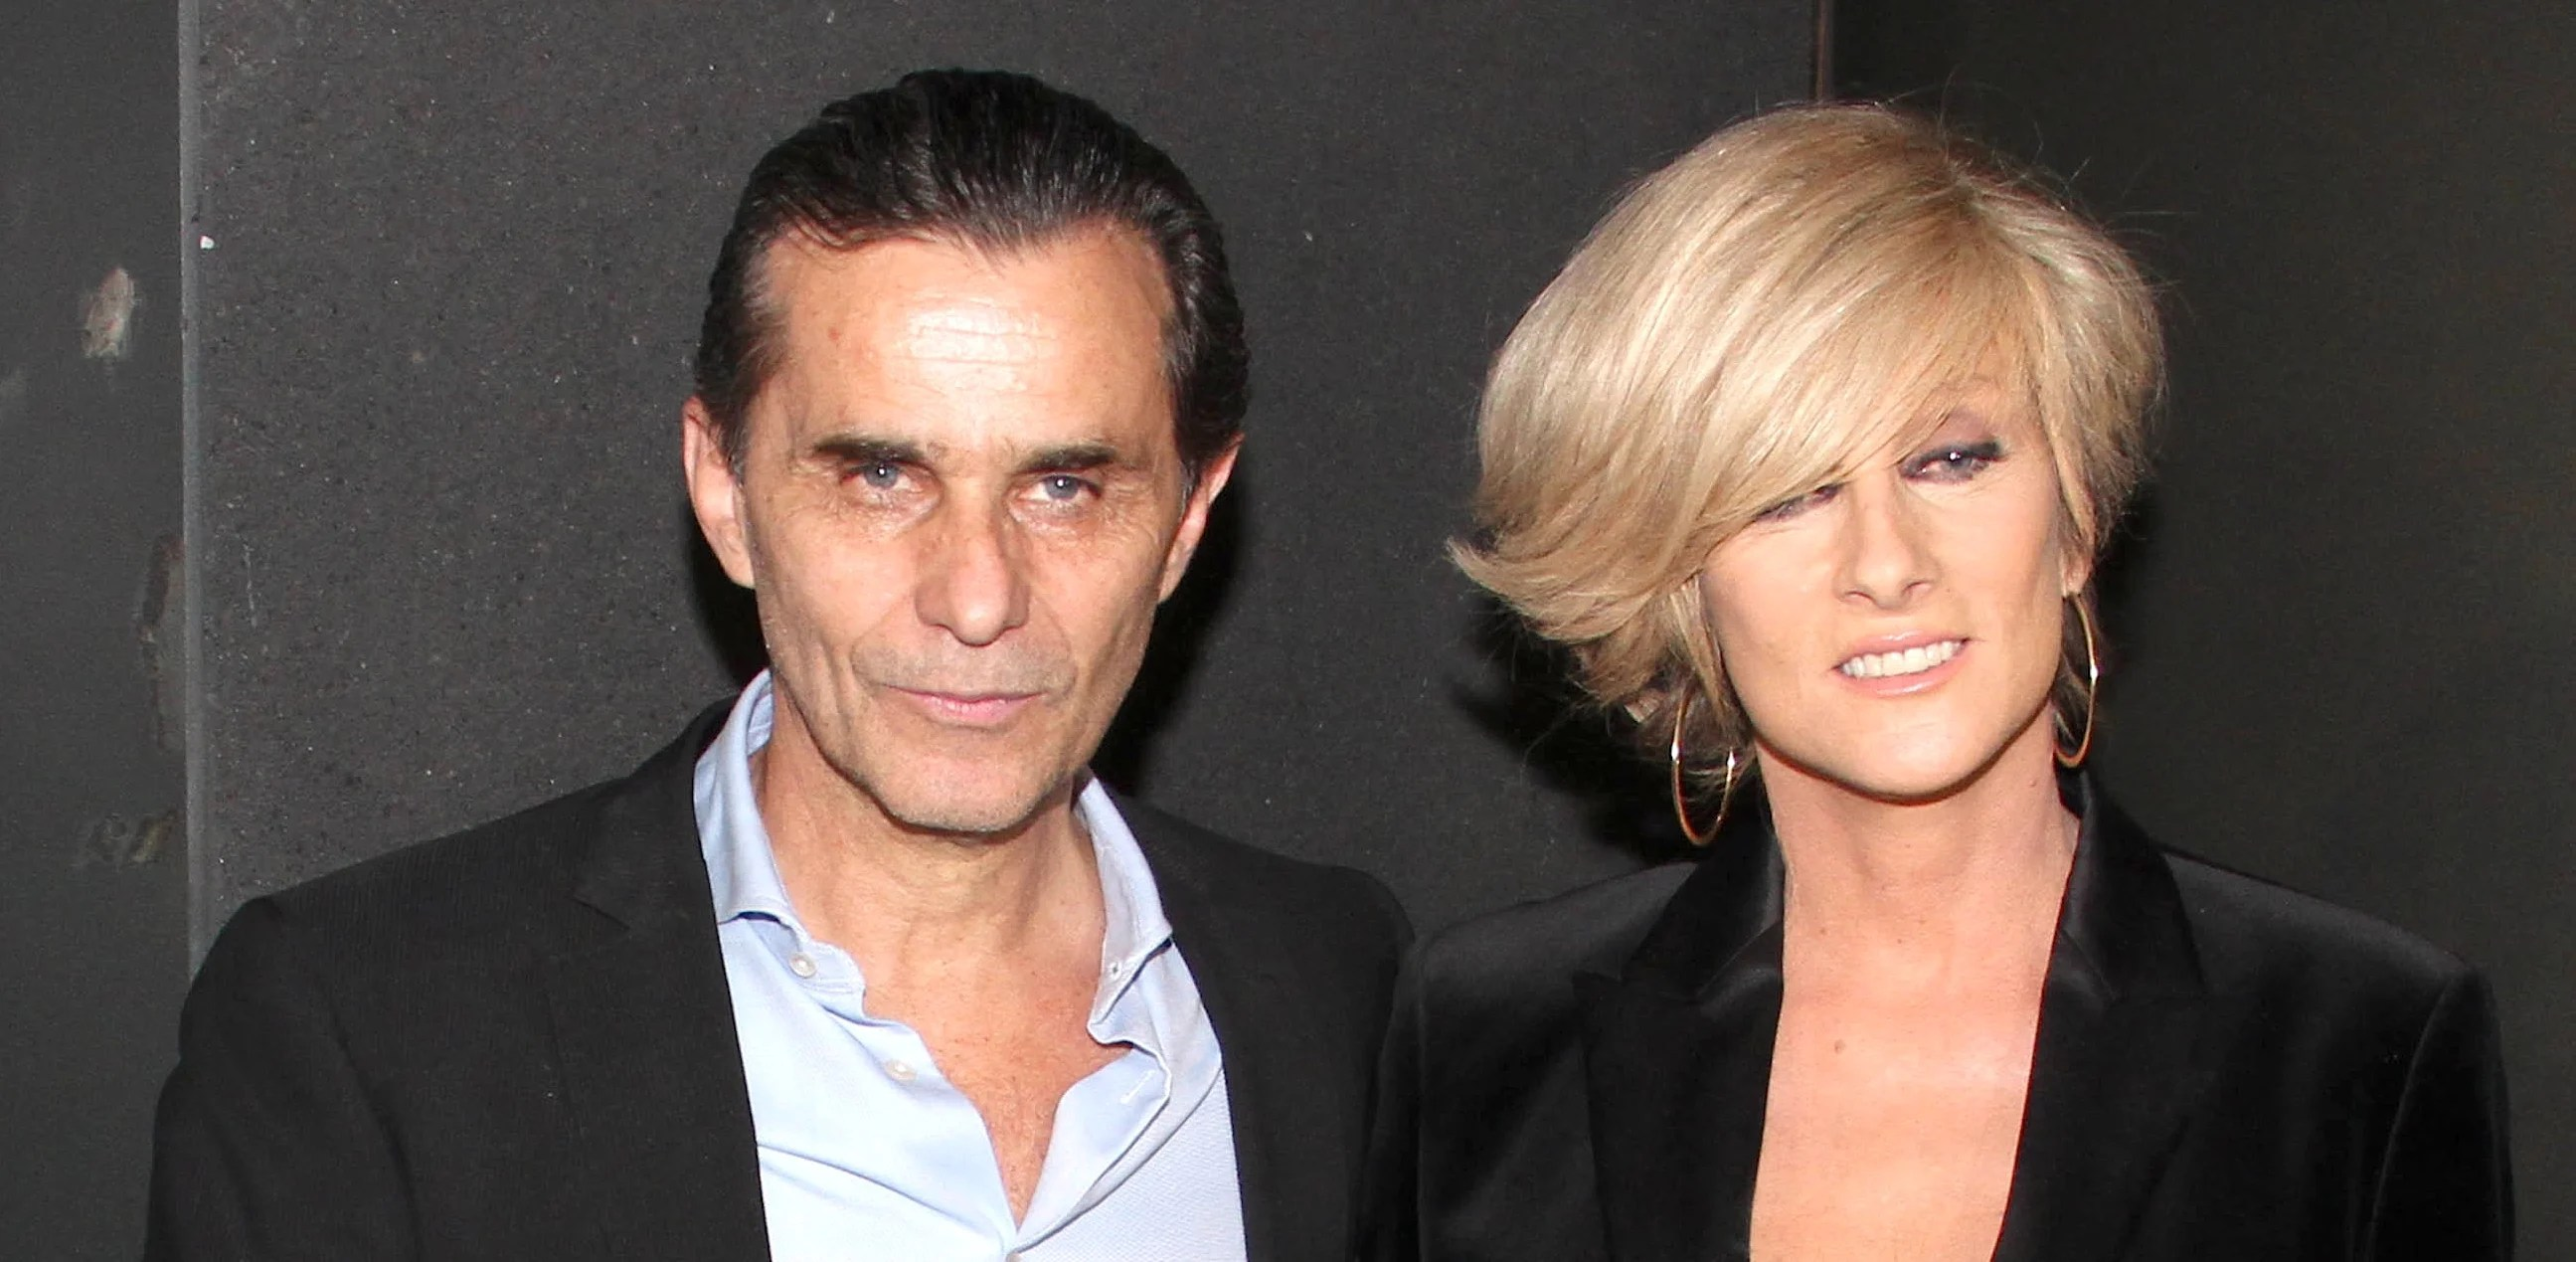 Humberto Zurita ends the mourning and denies news of Christian Bach